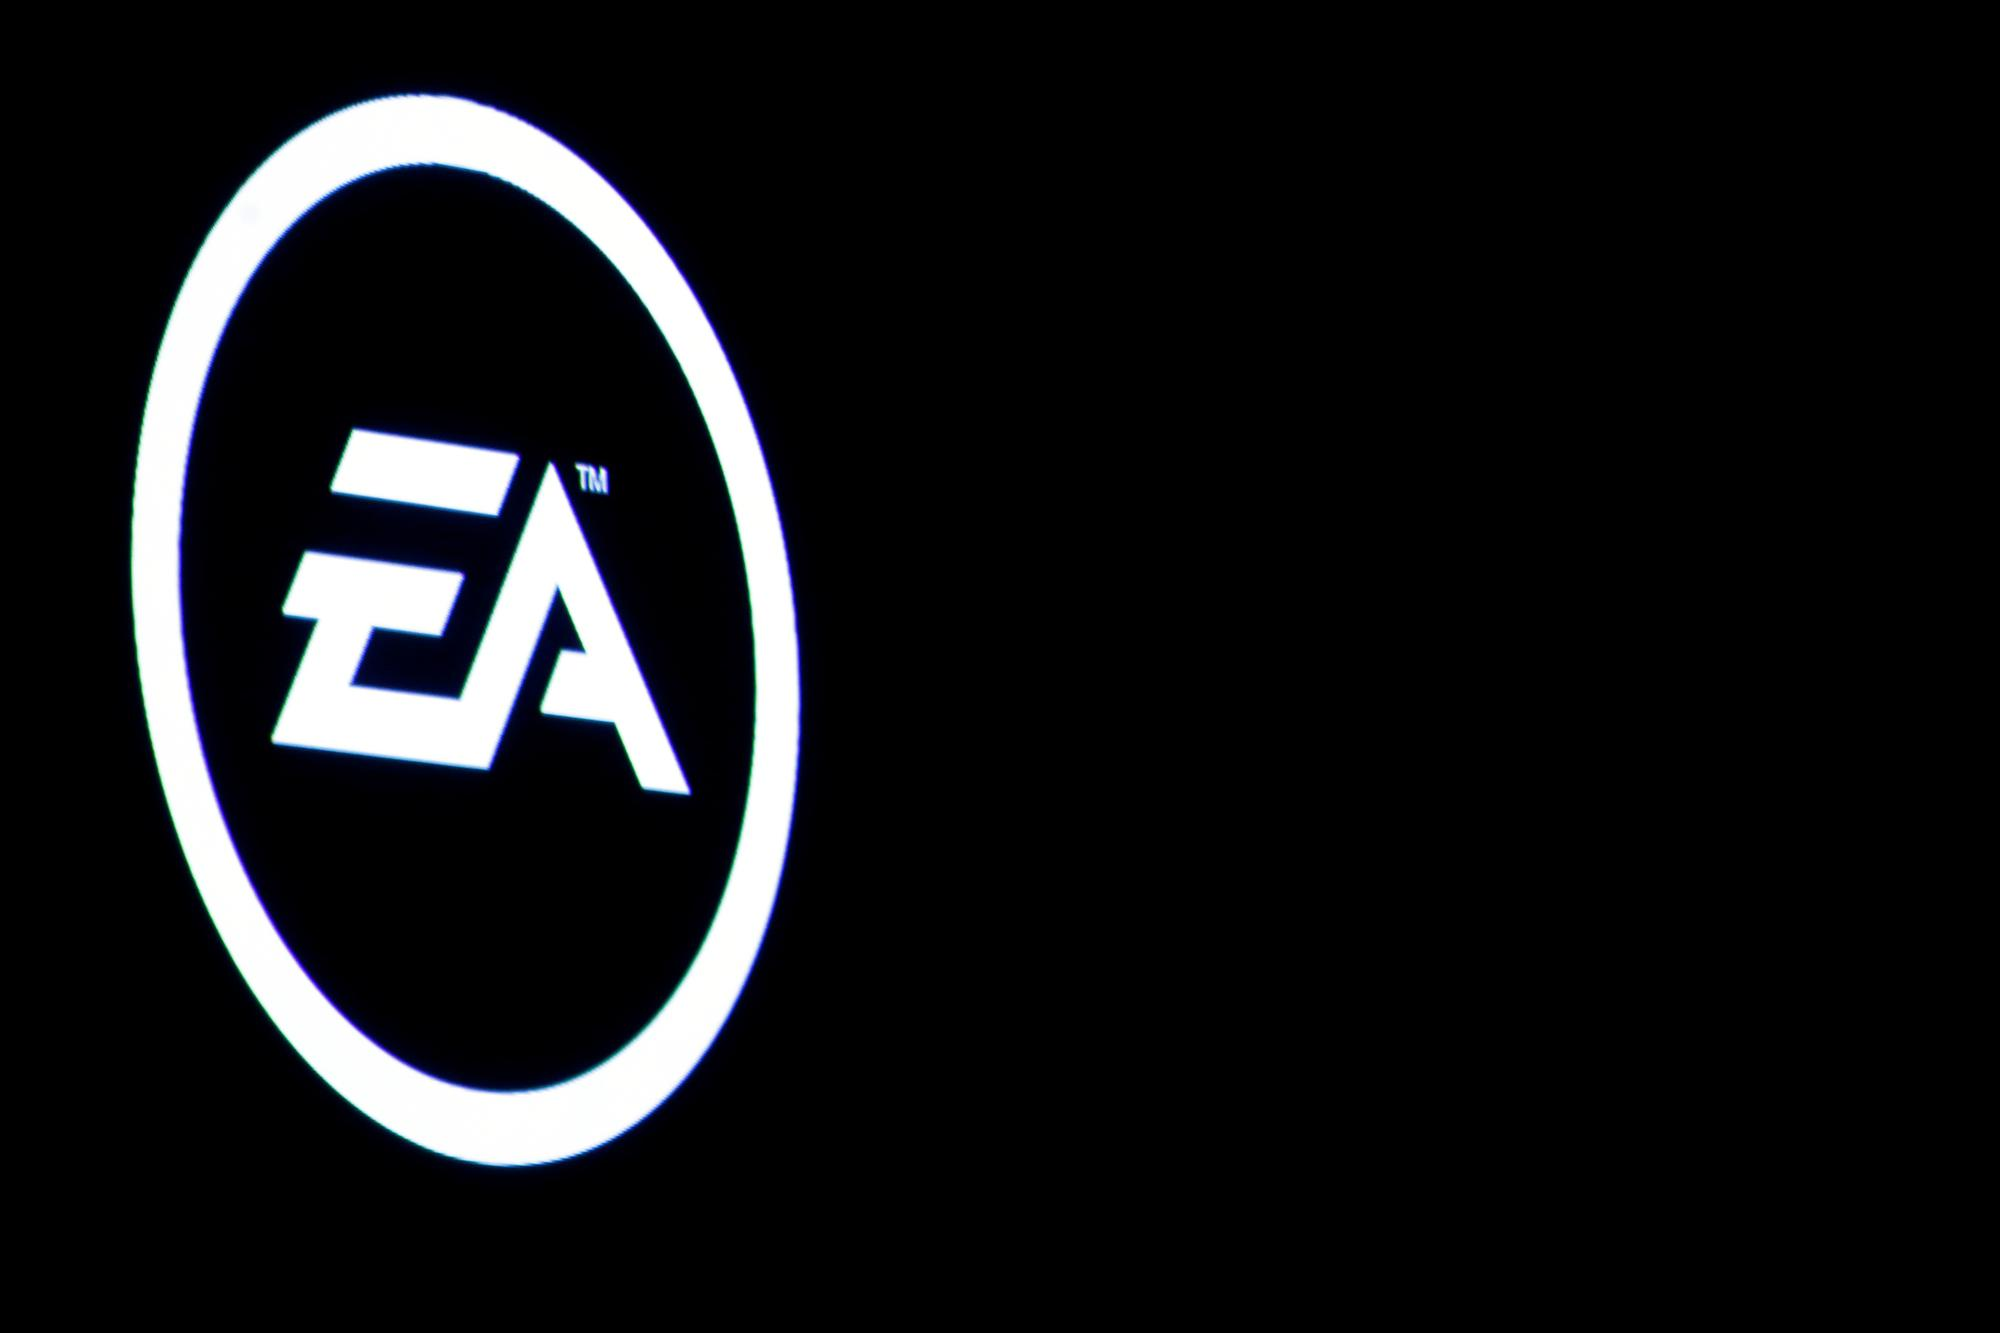 New 'Star Wars' title from EA set to be big draw this holiday season